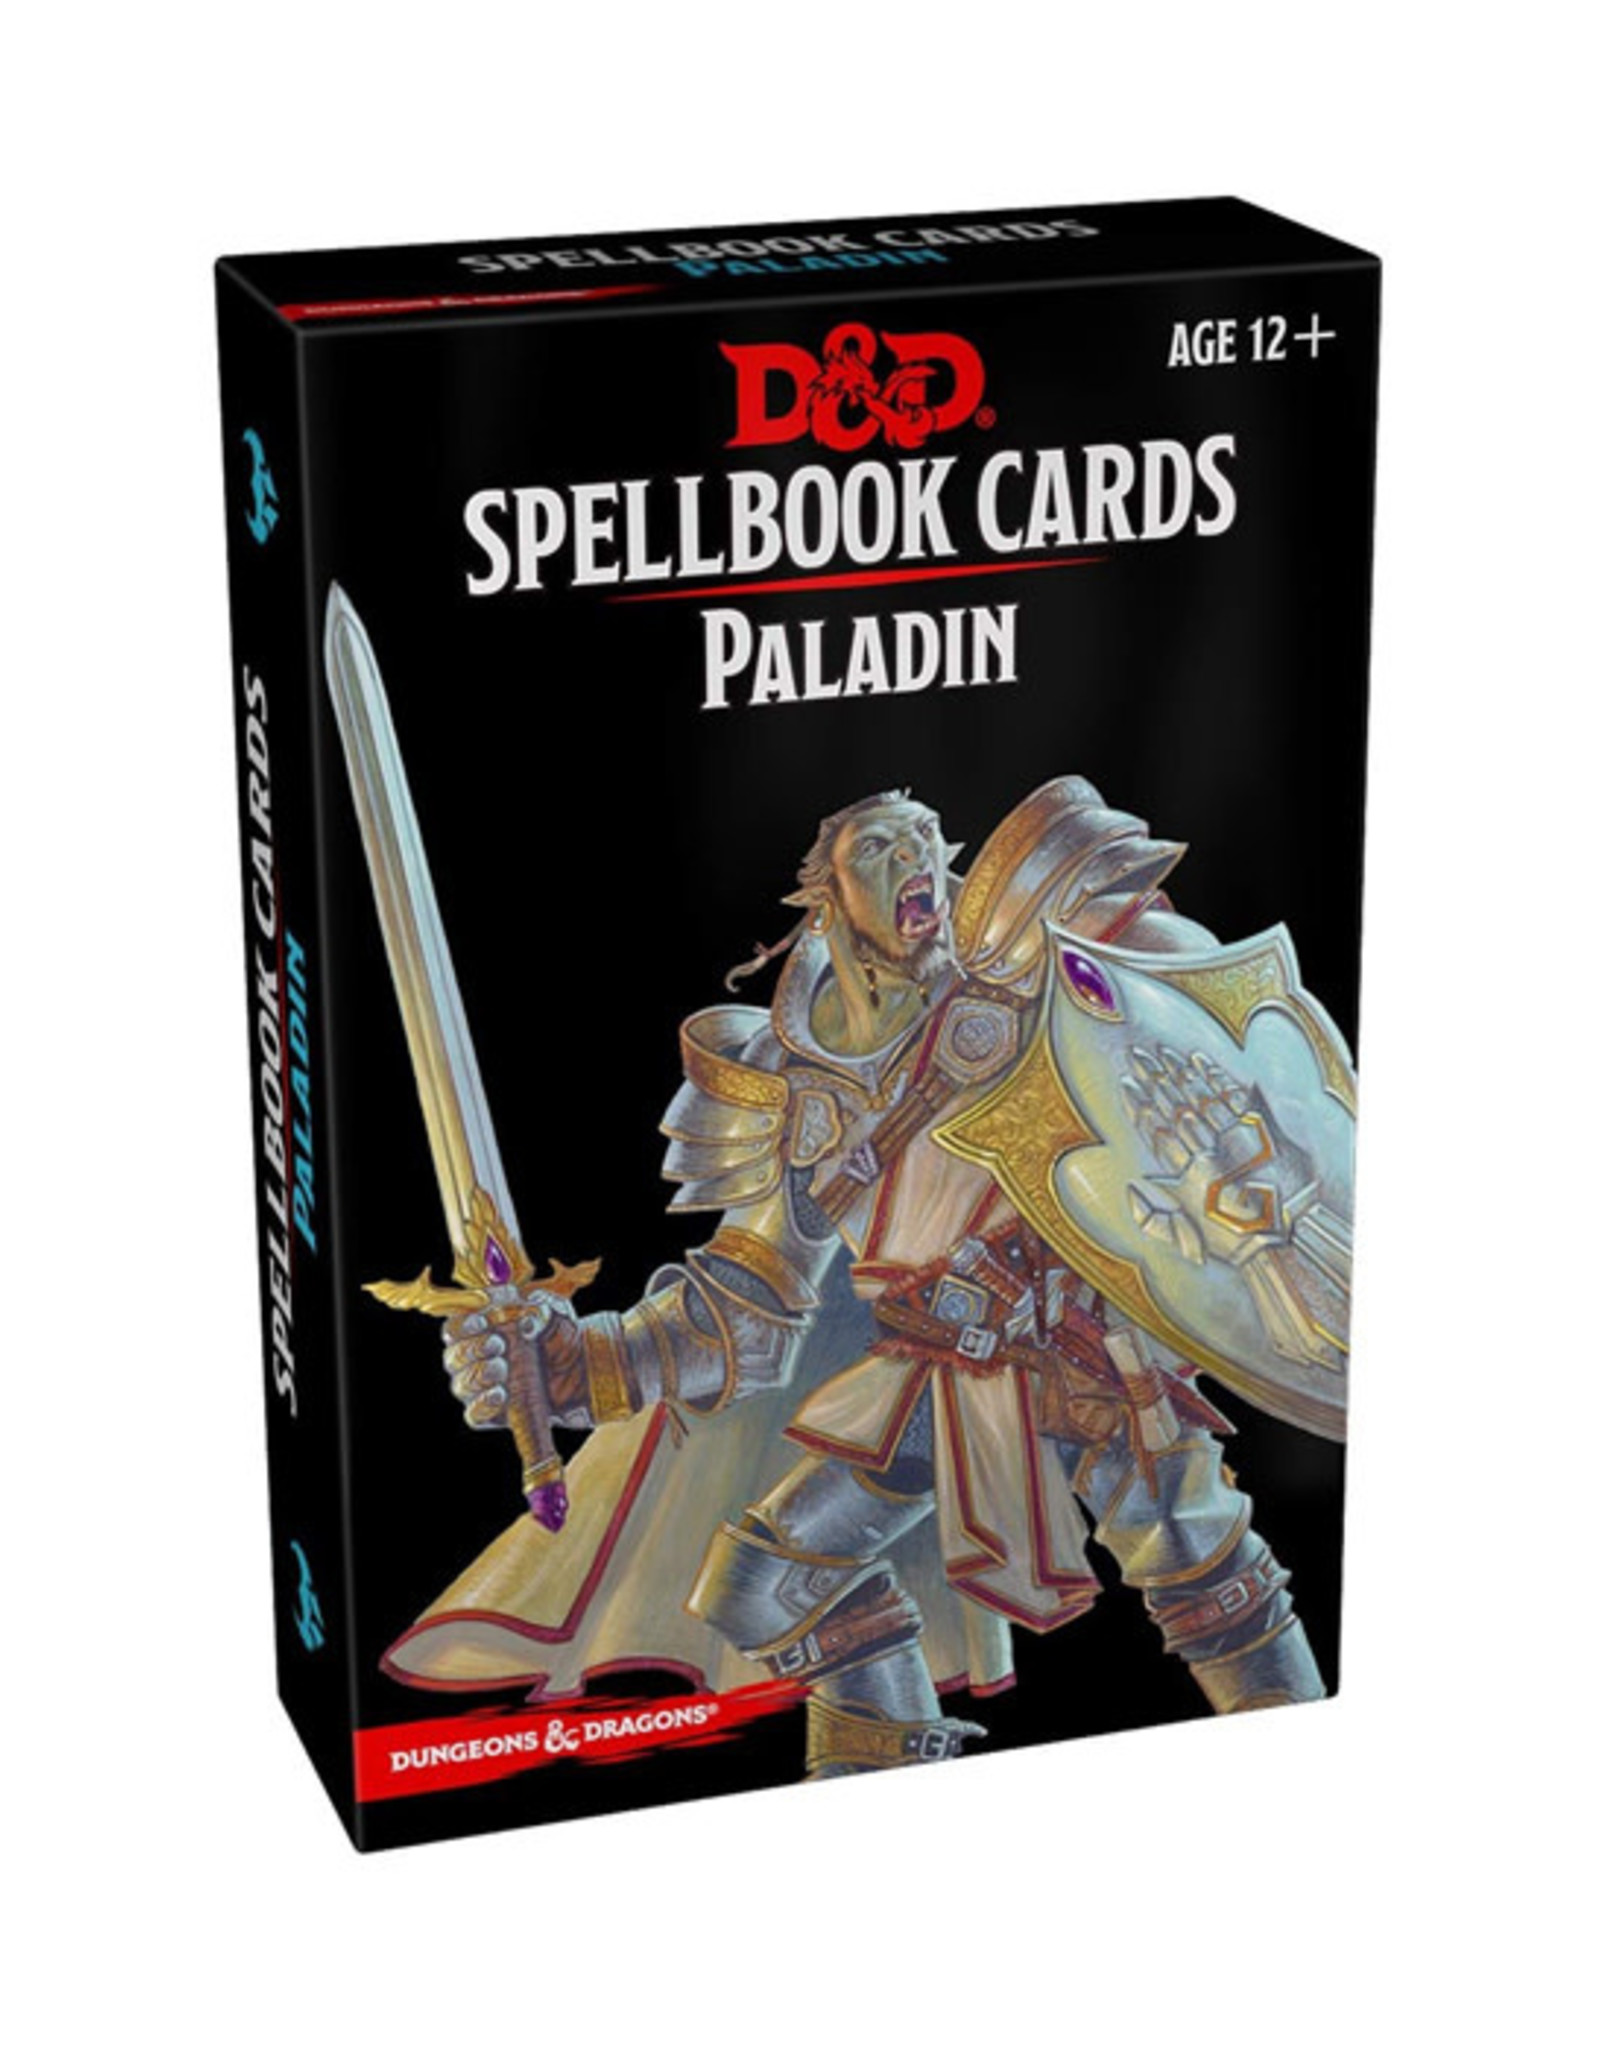 Dungeons & Dragons Dungeons & Dragons: 5th Edition - Spellbook Cards - Paladin